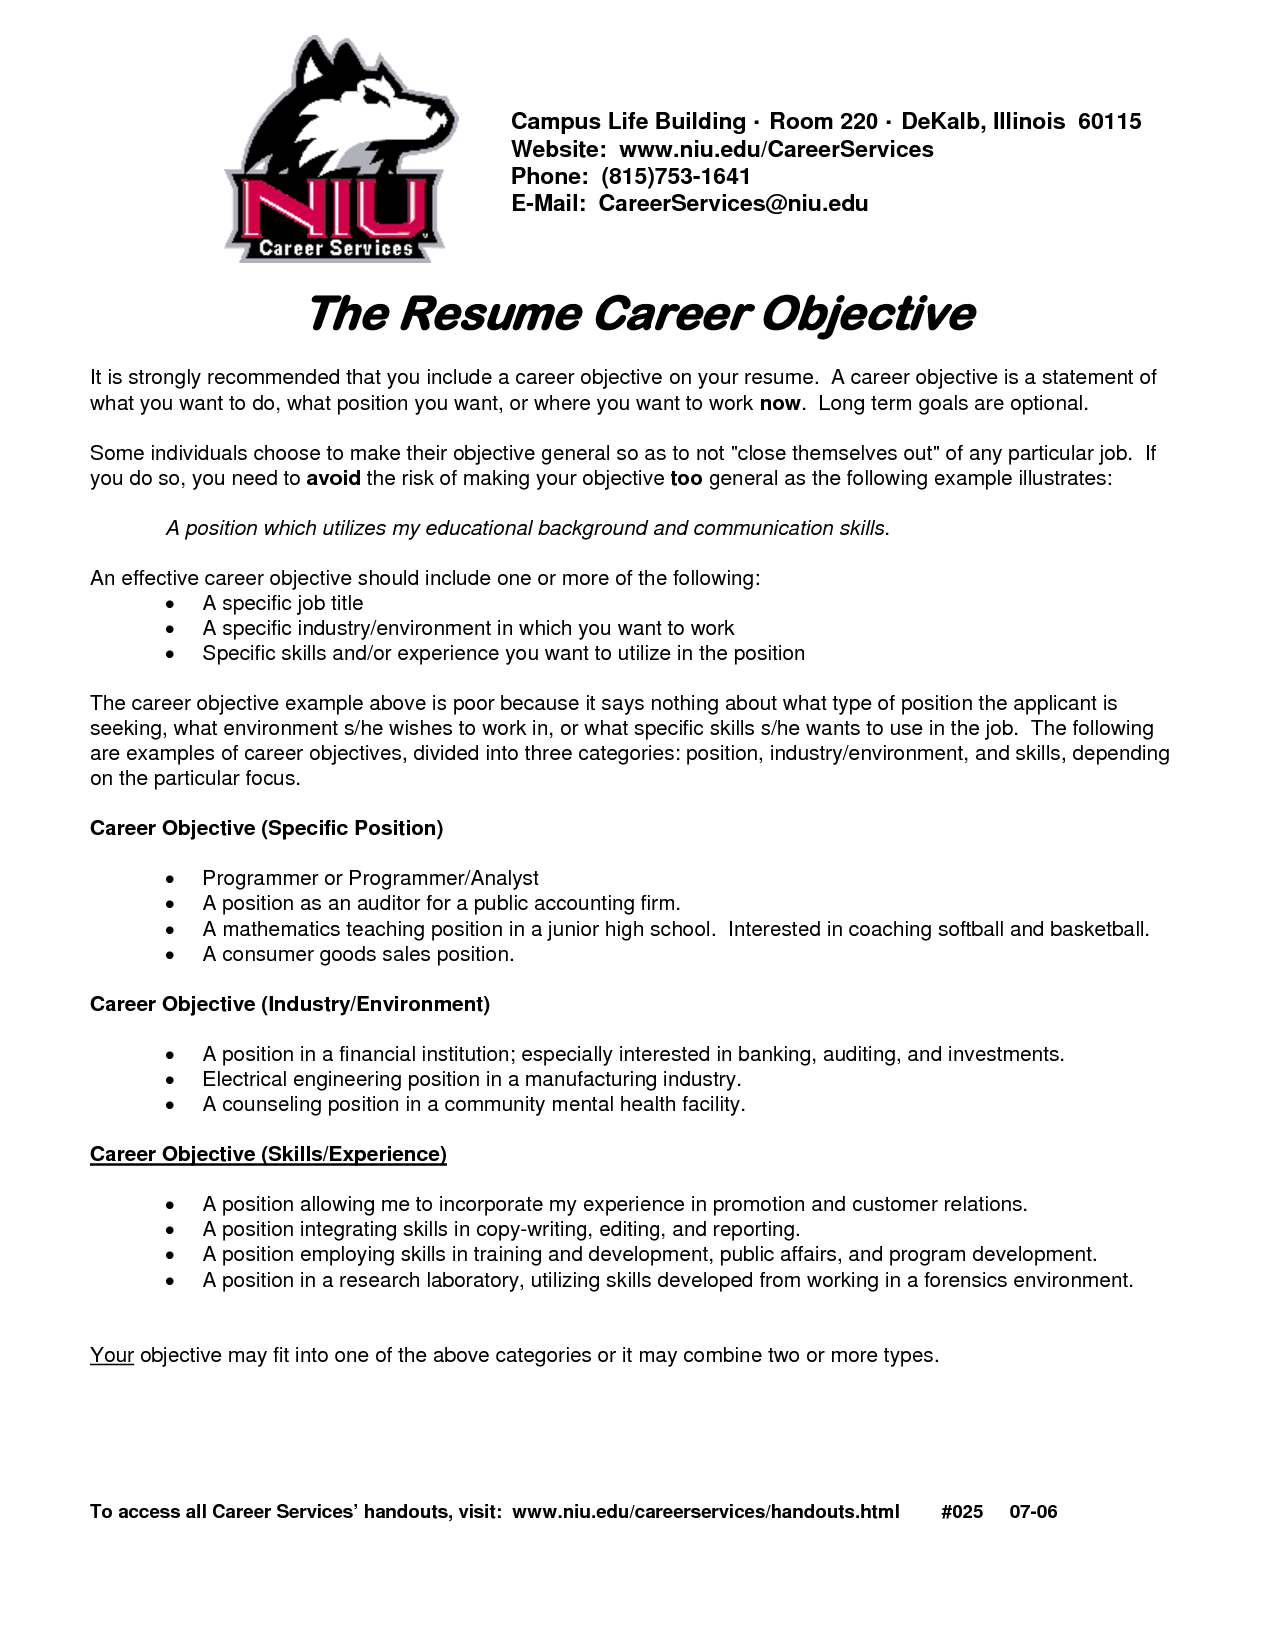 student resume objective examples resume new job - Sample Work Resume